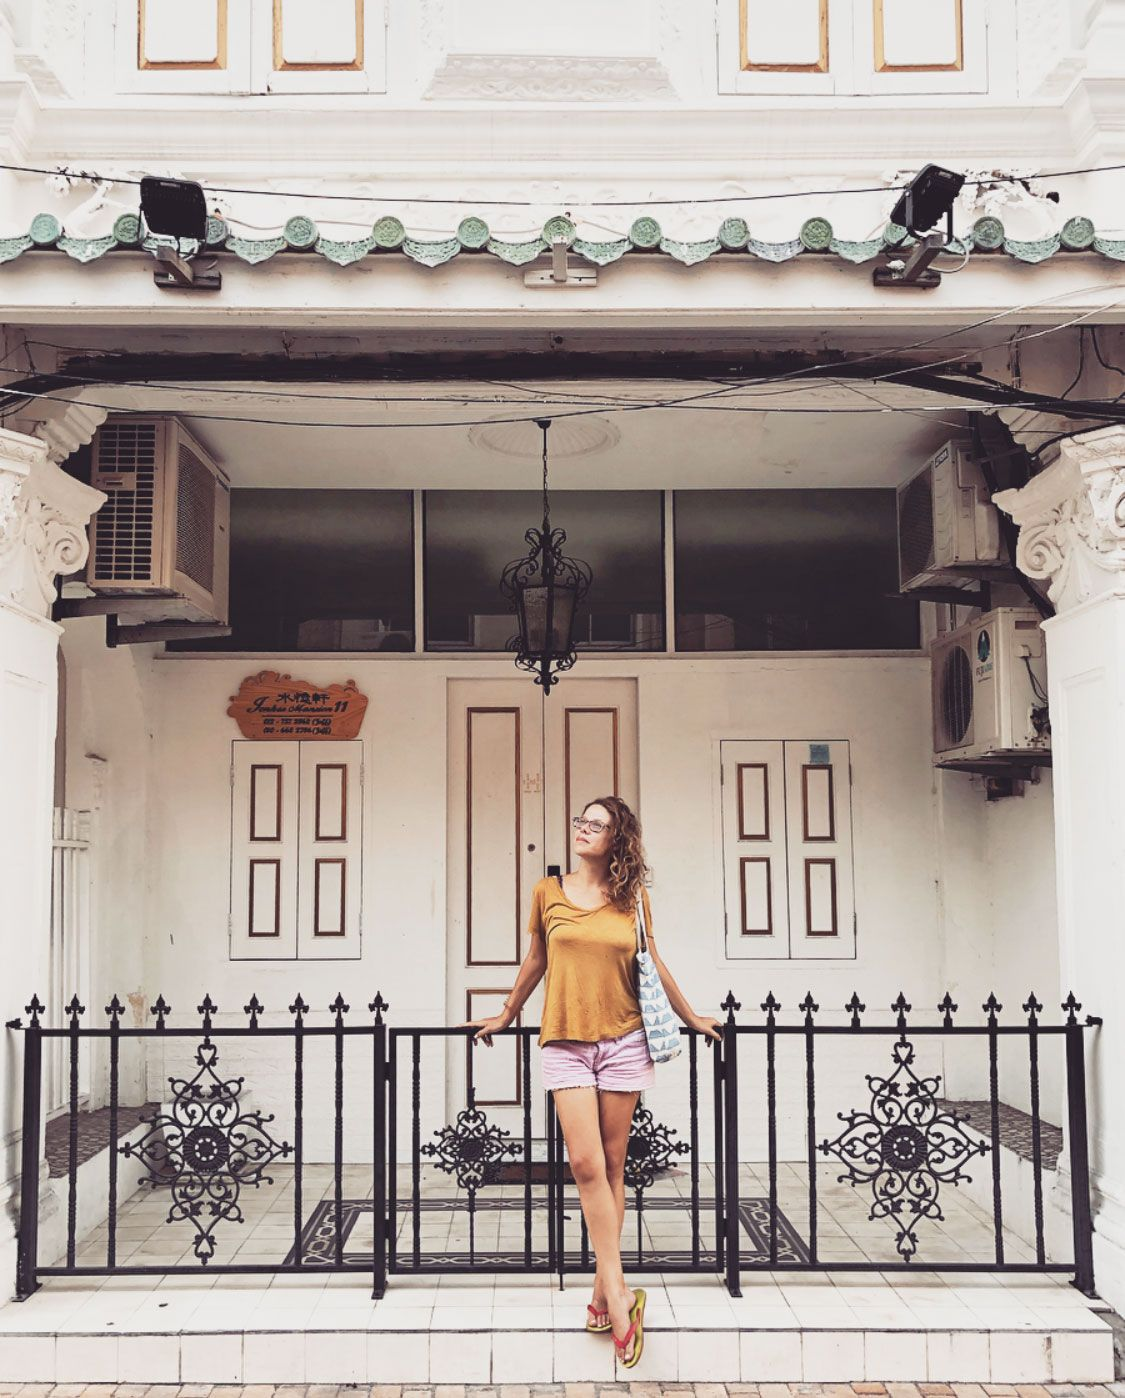 One Hundred Year Old Facades Of Chinatown Are Waiting For Those Who Love A Rustic Vibe And Loads Of Intricate And Colorful Details Vintage Coffee Shops Top 10 Instagram Malacca Malaysia